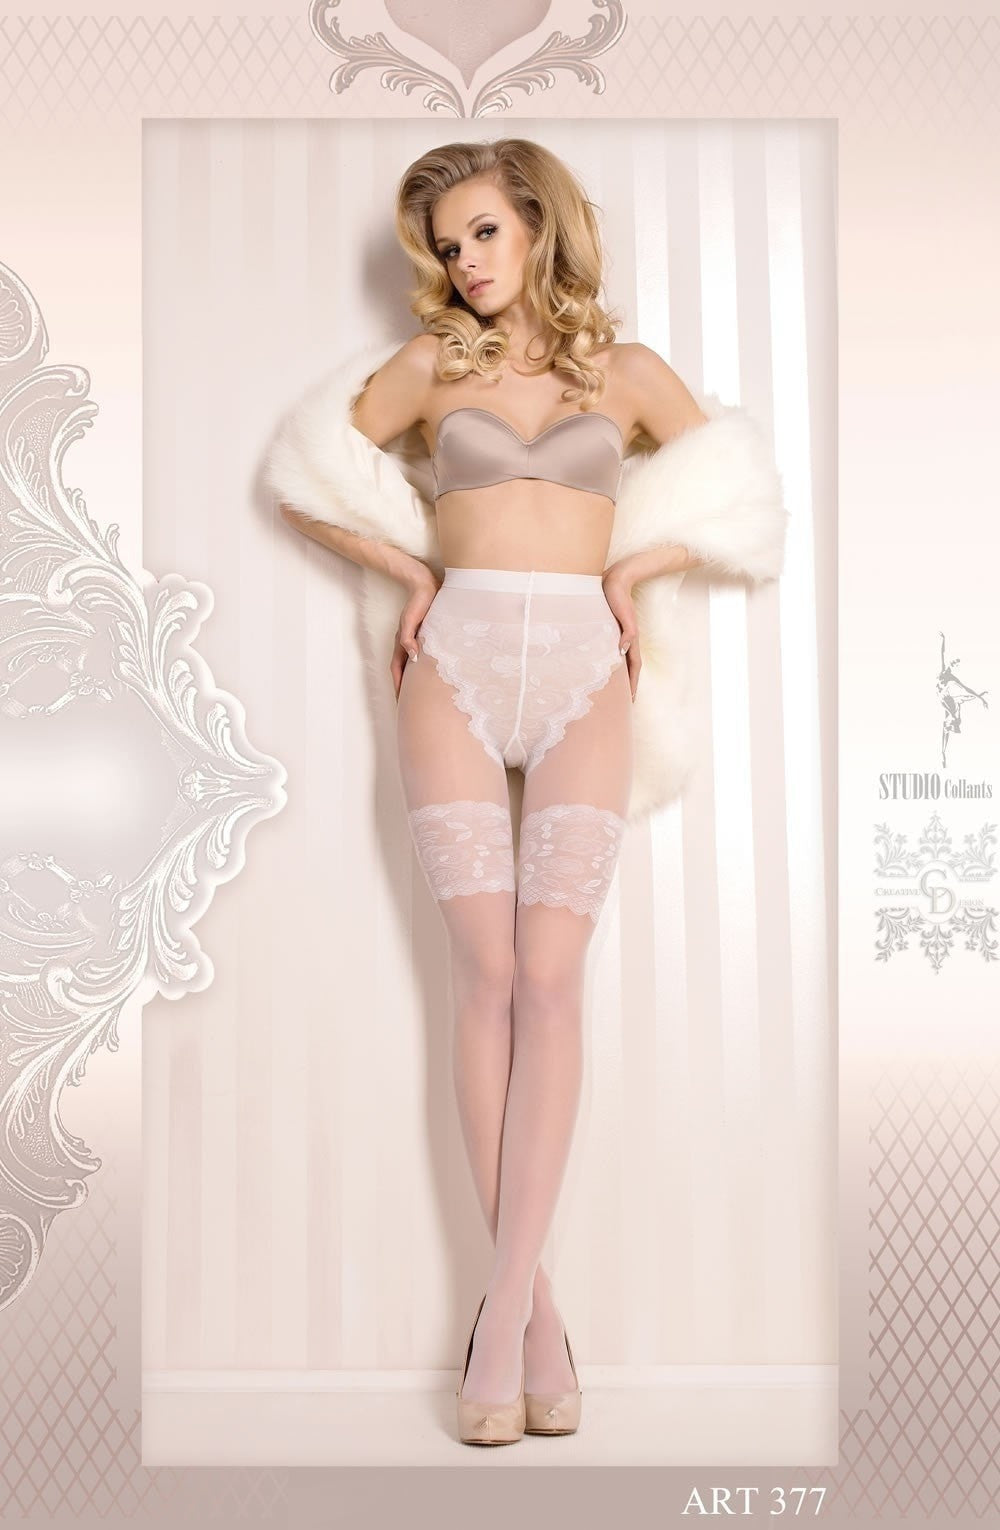 Ballerina Tights 377 (White) - Tights - Ballerina - Charm and Lace Boutique